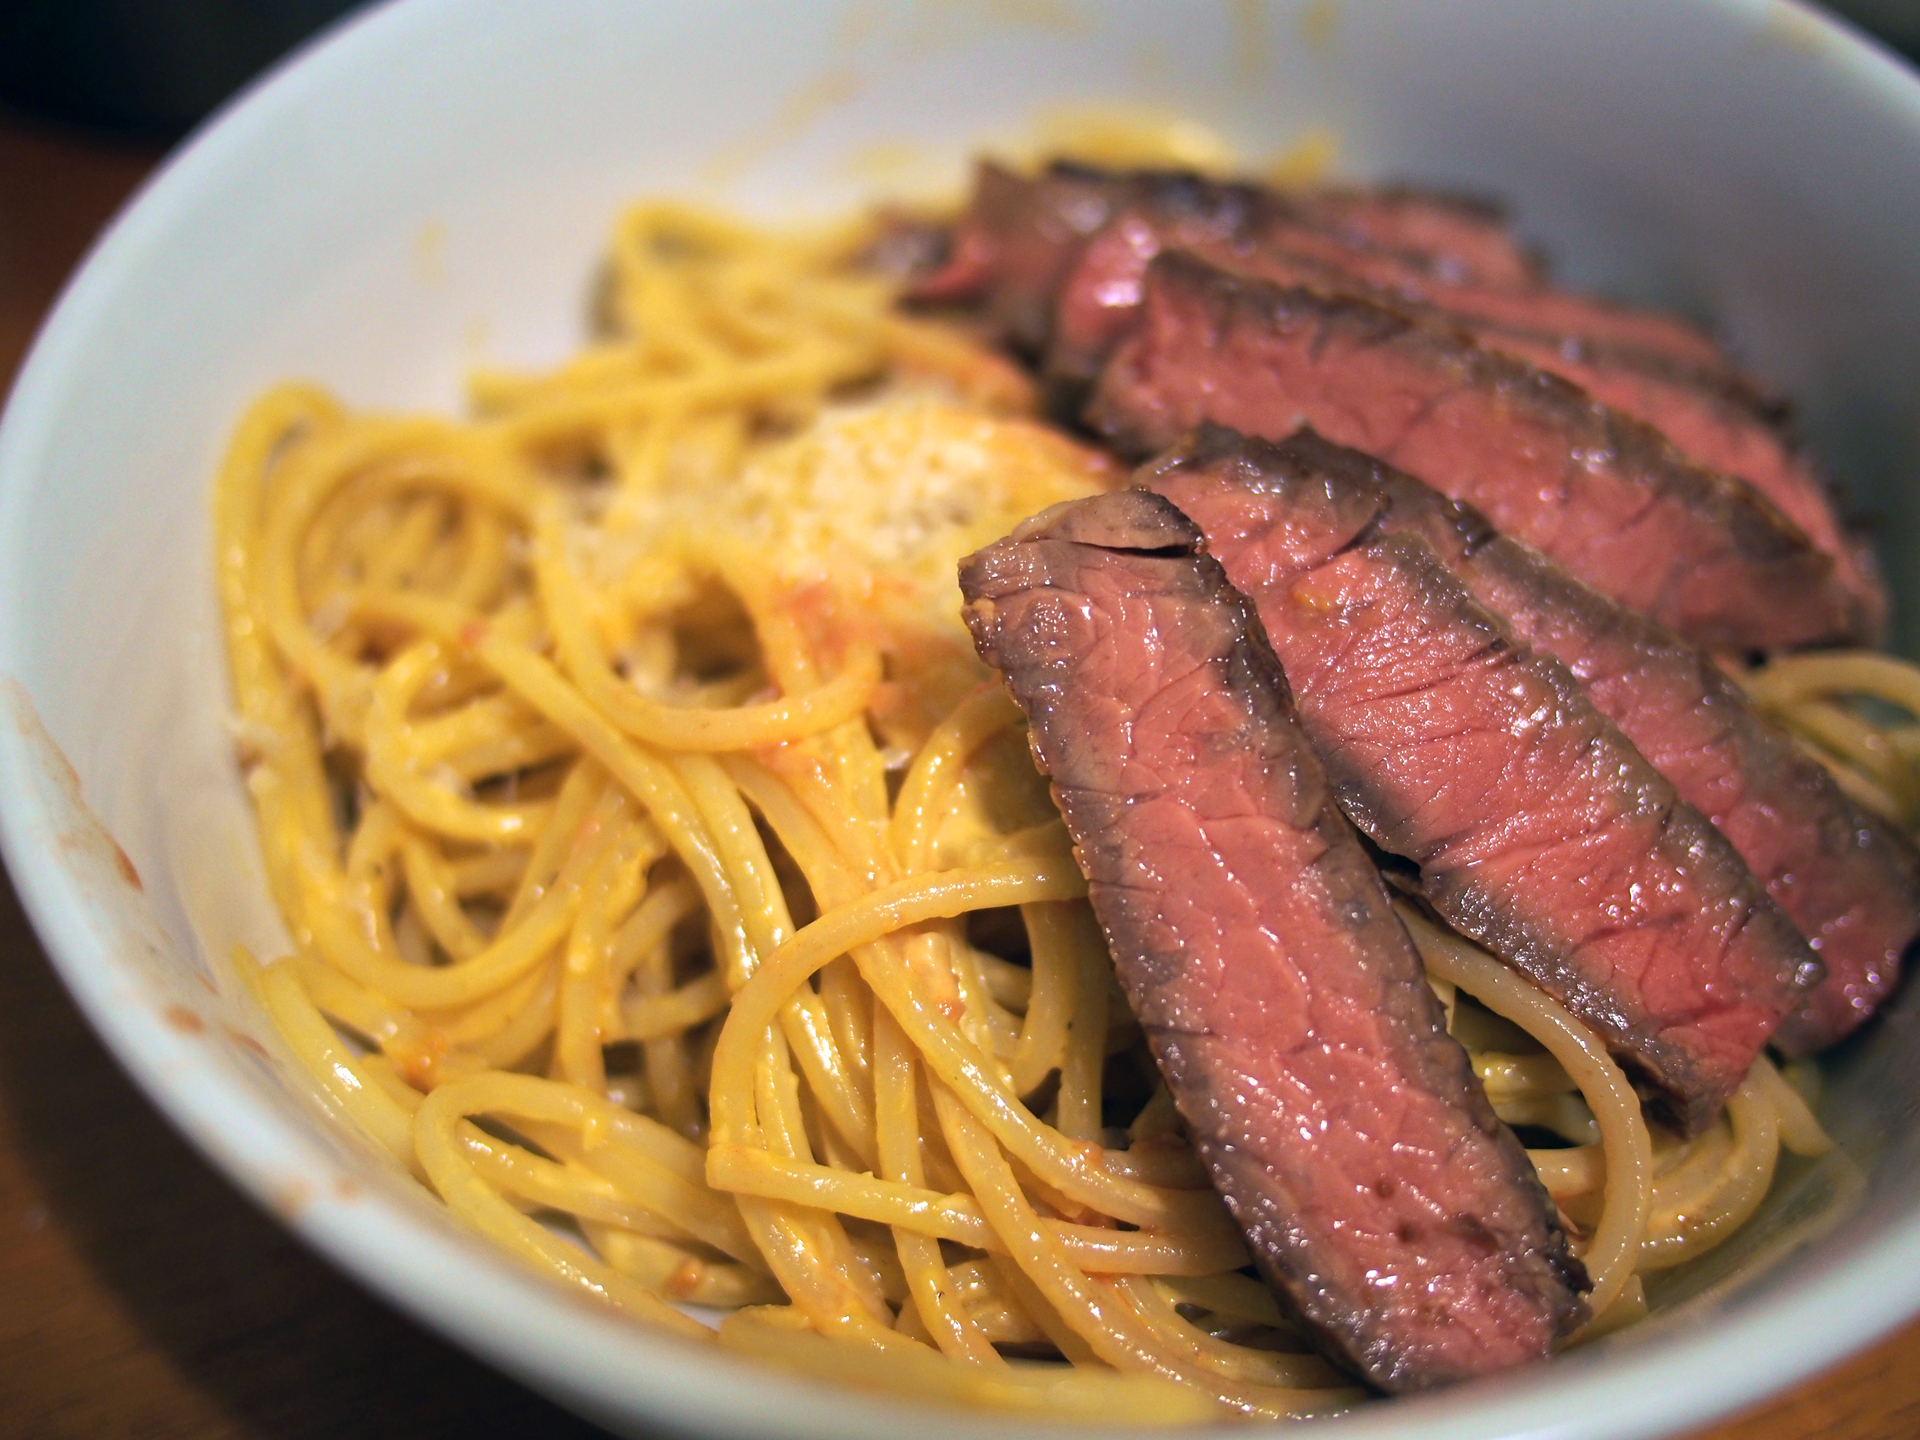 Spaghetti with uni butter, garlic, pepper, and parmigiano-reggiano and sliced pan-seared/butter-basted rib eye!